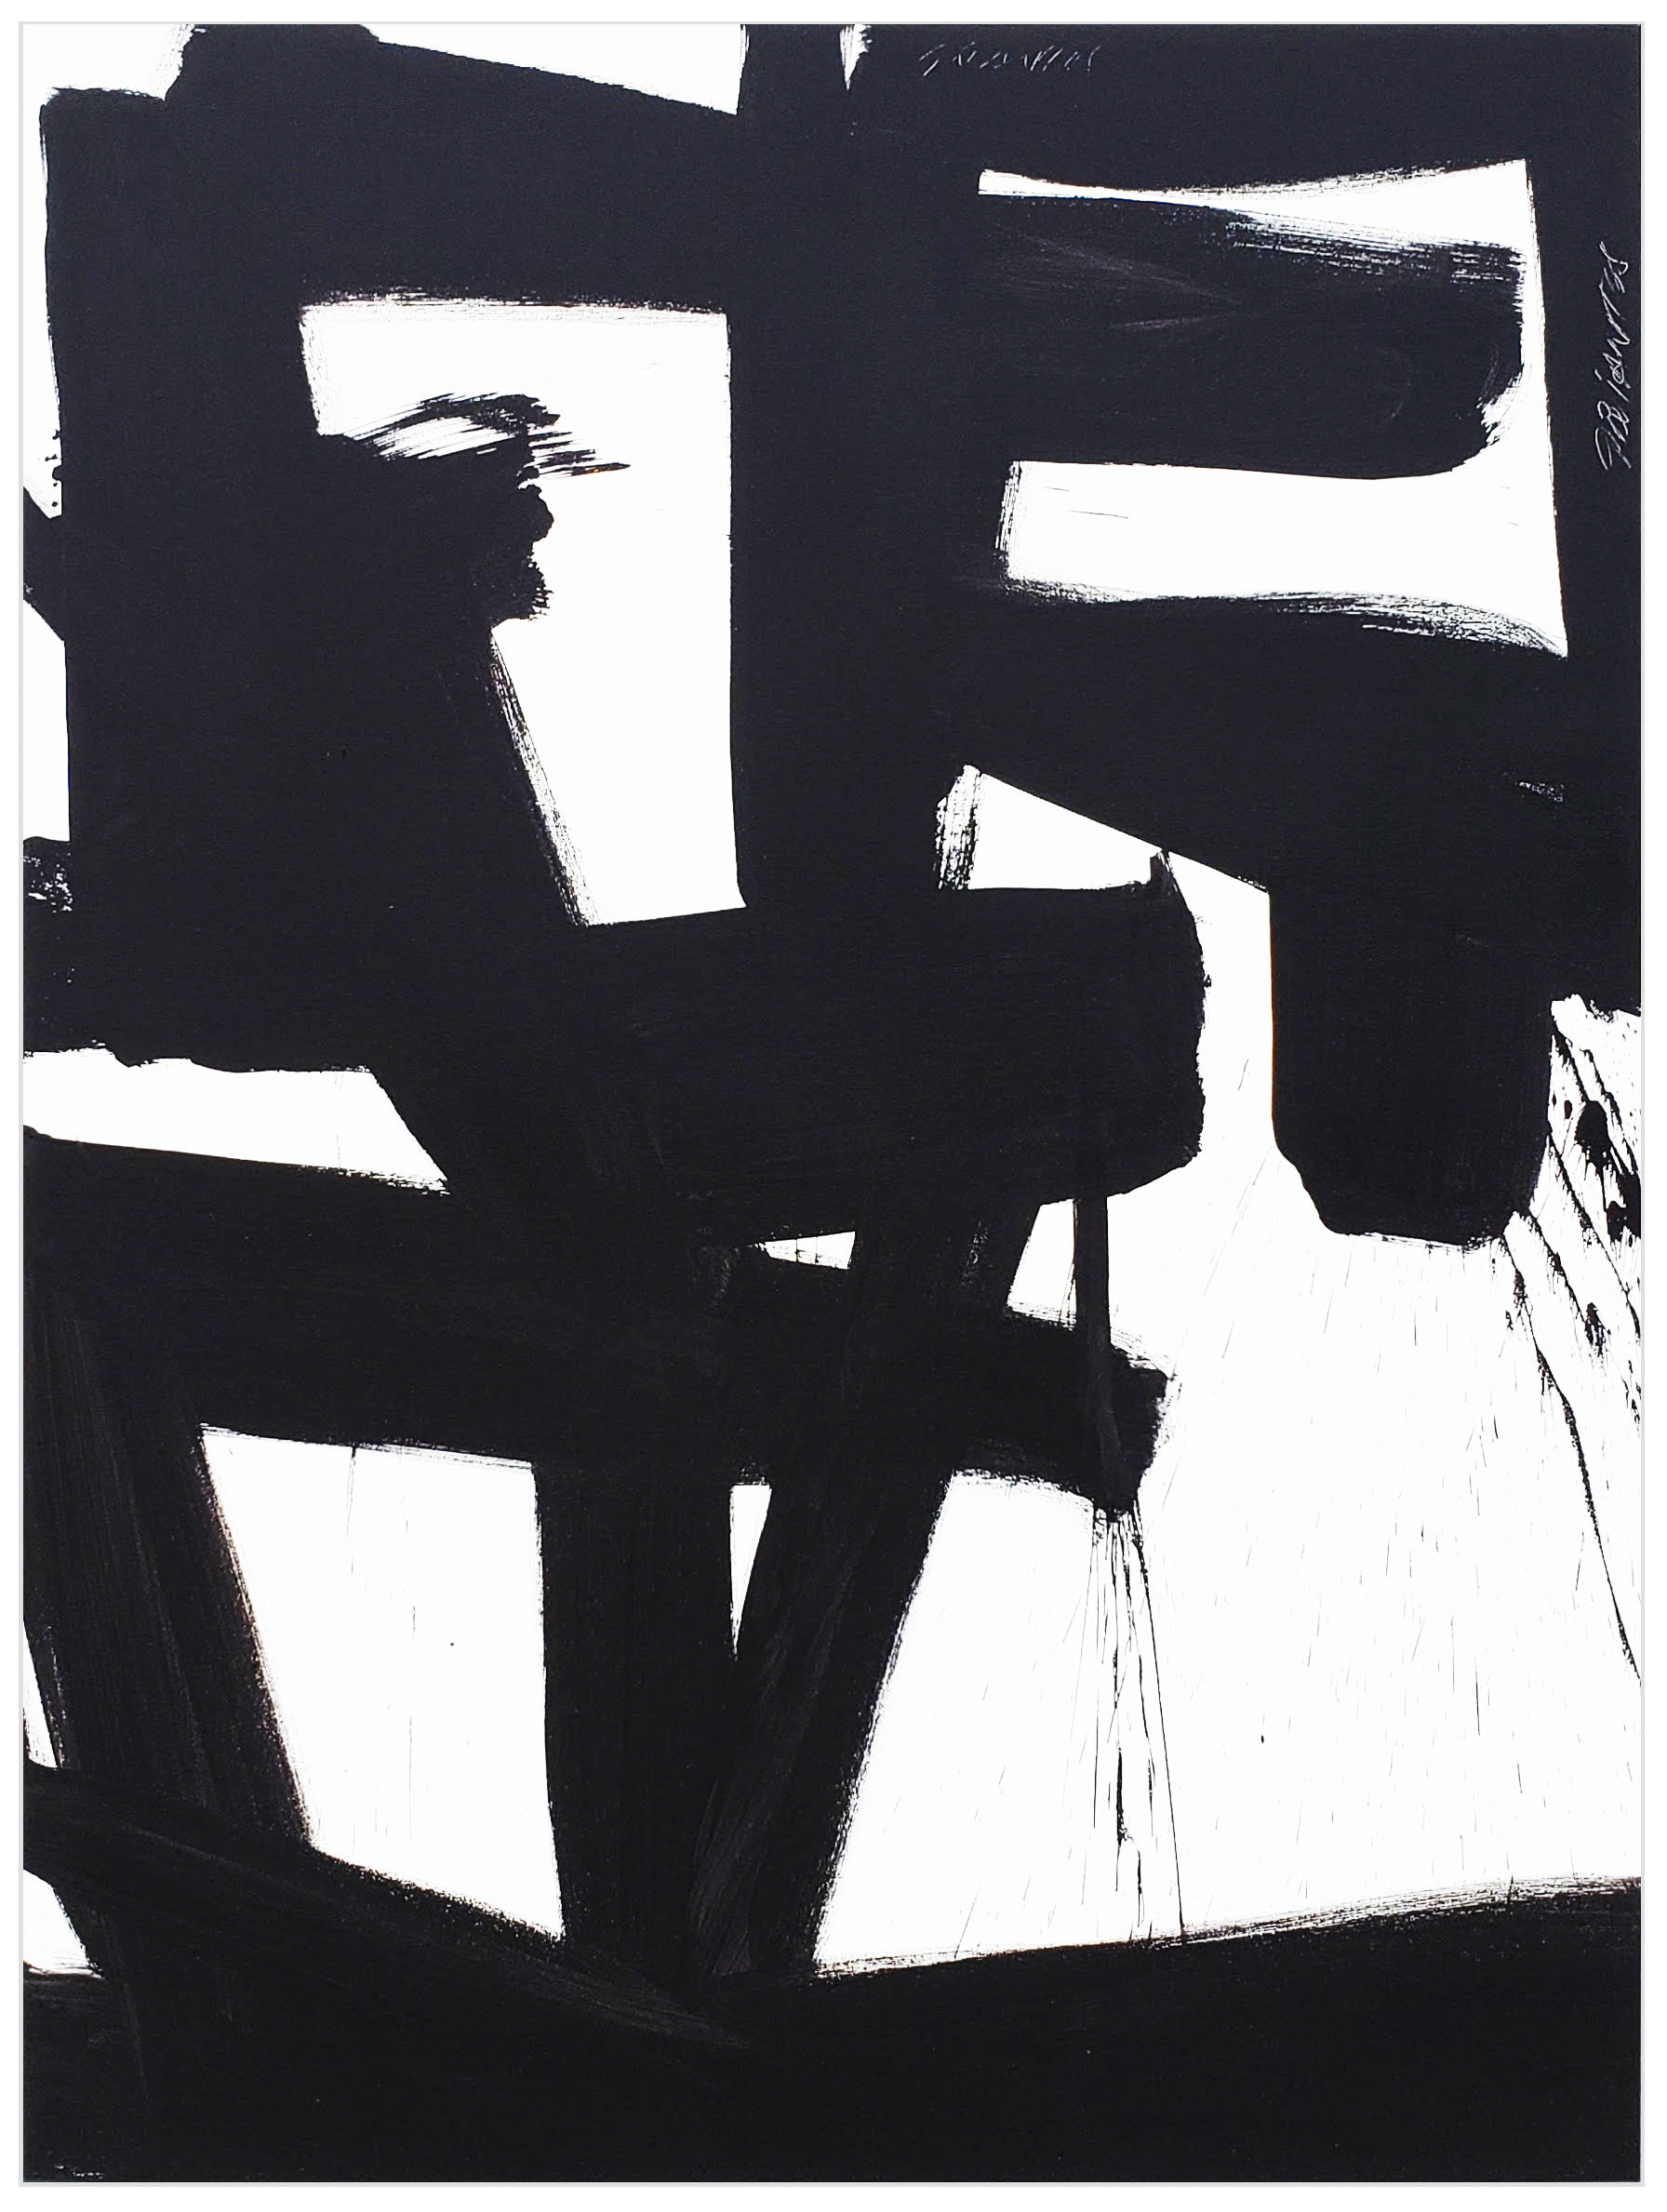 """Black and White #82, 2019, acrylic on canvas, 48"""" x 36"""" (122 x 91.4 cm)"""